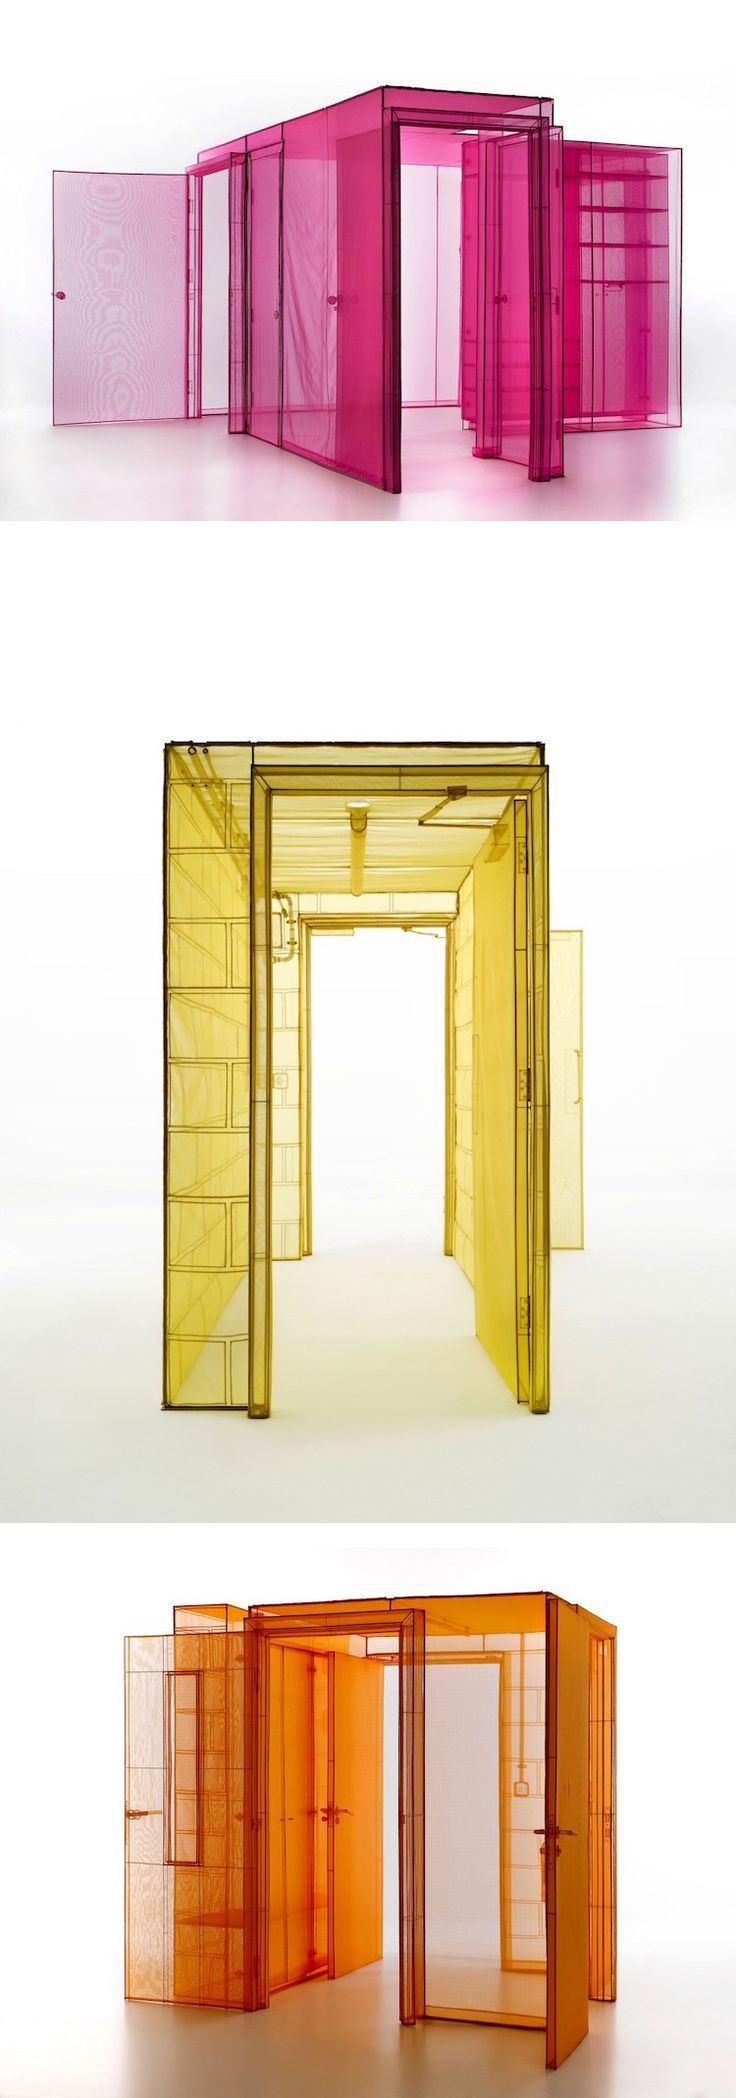 Installation art by artist Do Ho Suh // architectural replicas